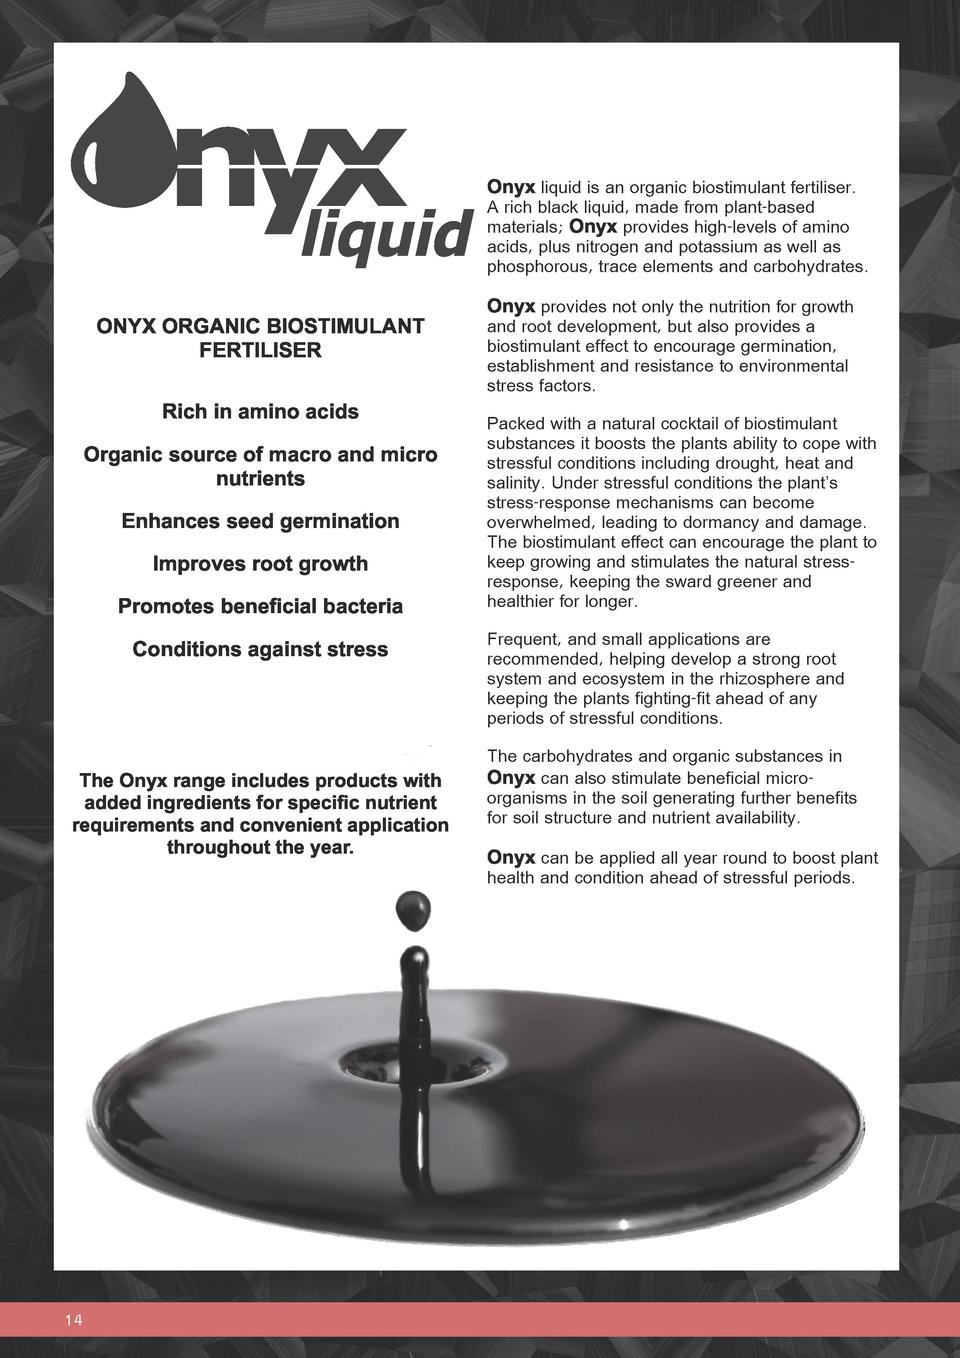 Onyx liquid is an organic biostimulant fertiliser. A rich black liquid, made from plant-based materials  Onyx provides hig...